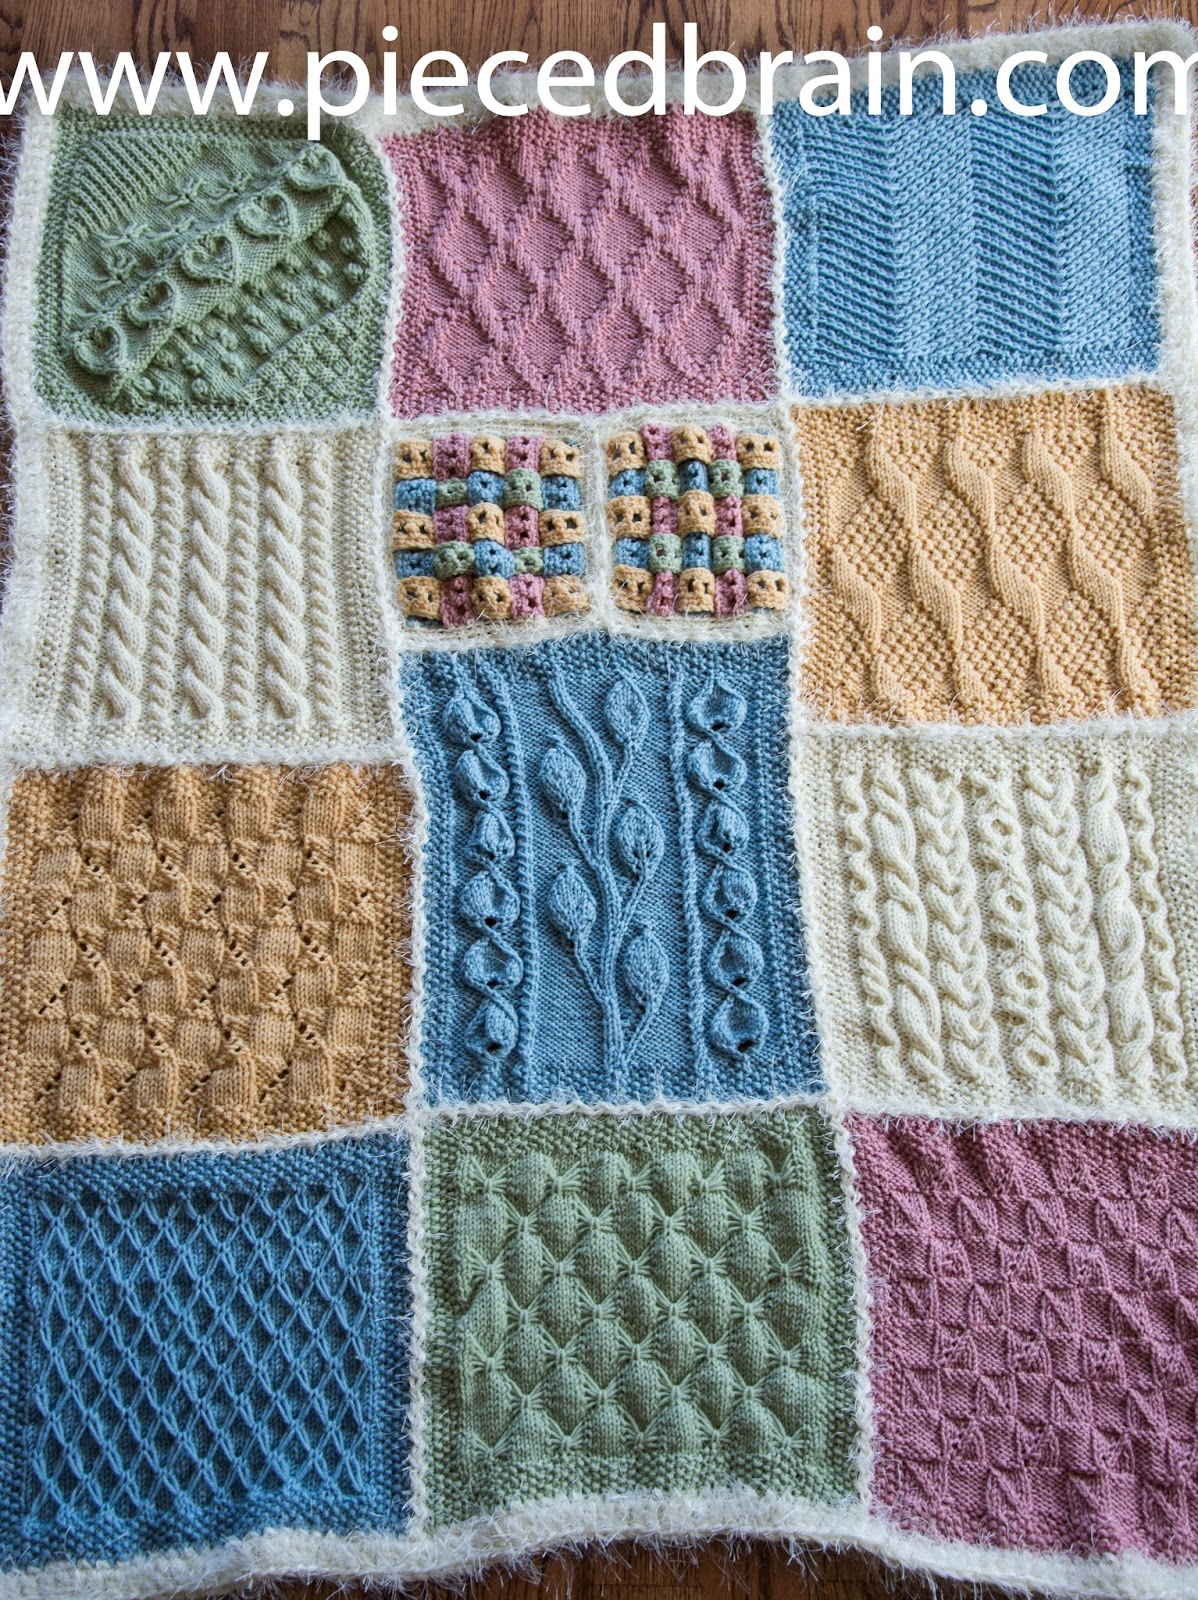 Pieced Brain: Knitted afghan finished! Great way to join the blocks...